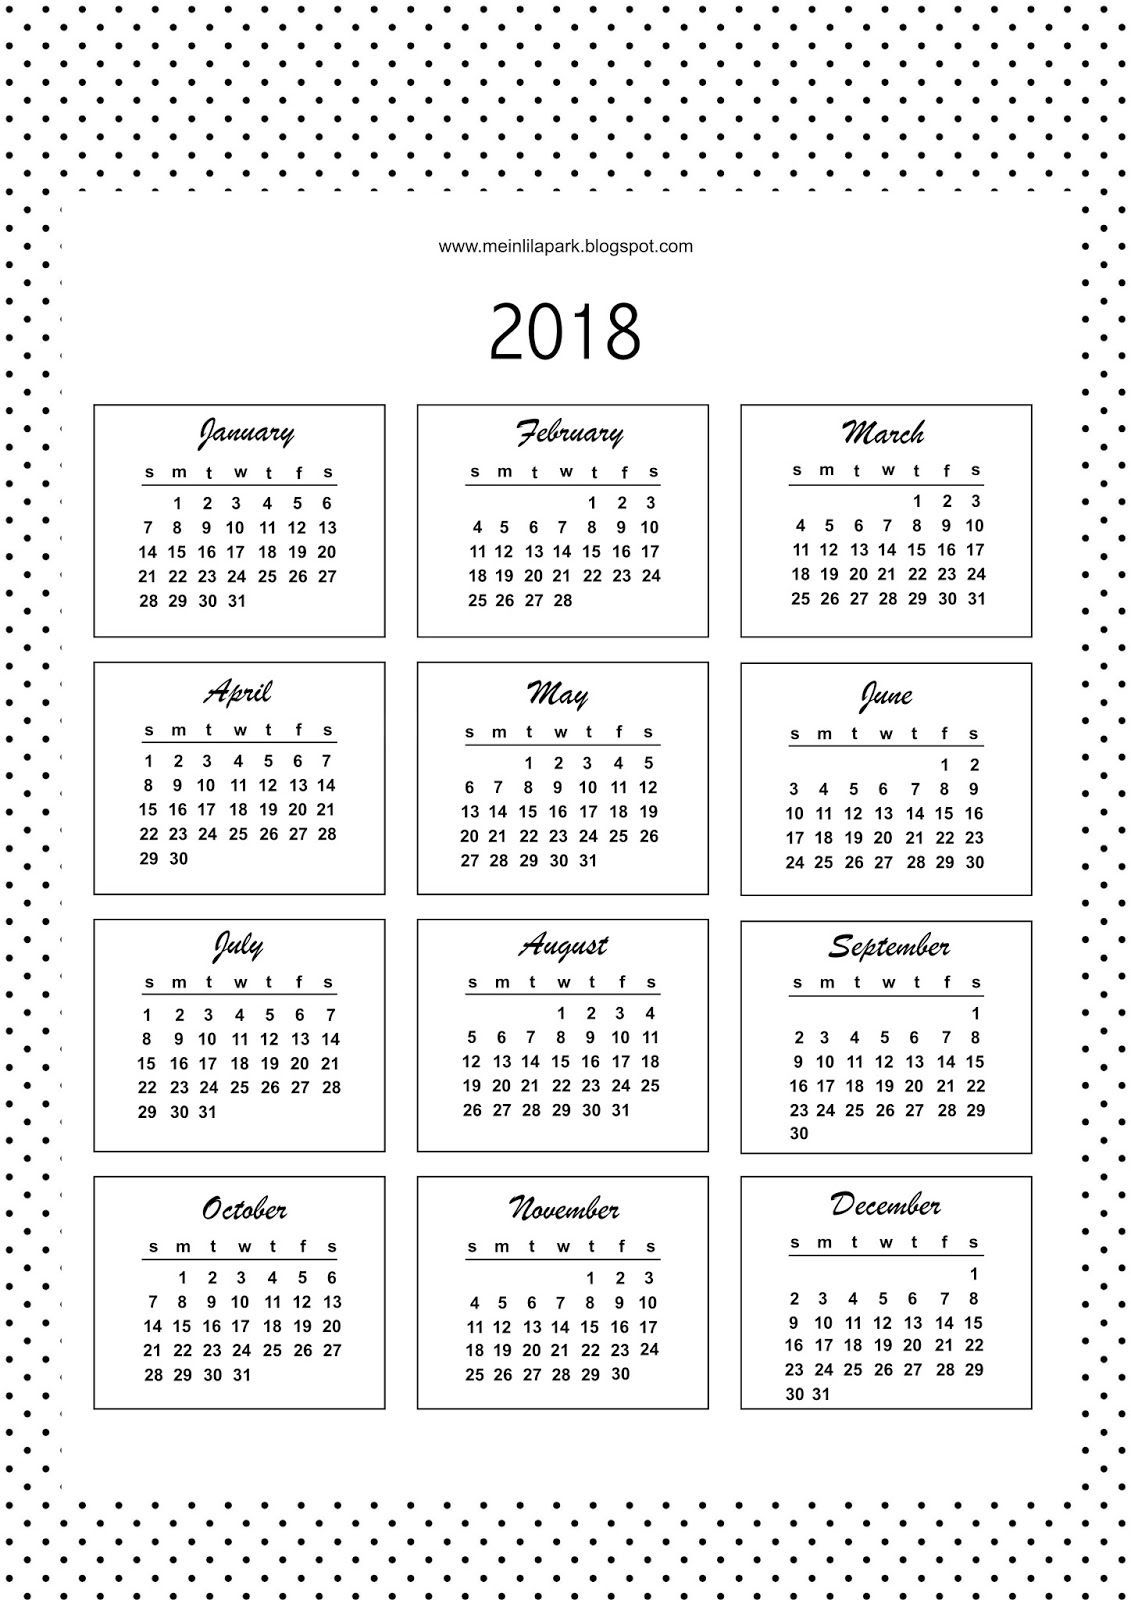 Free Printable Bullet Journal Calendar Cards 2018 | Bullet